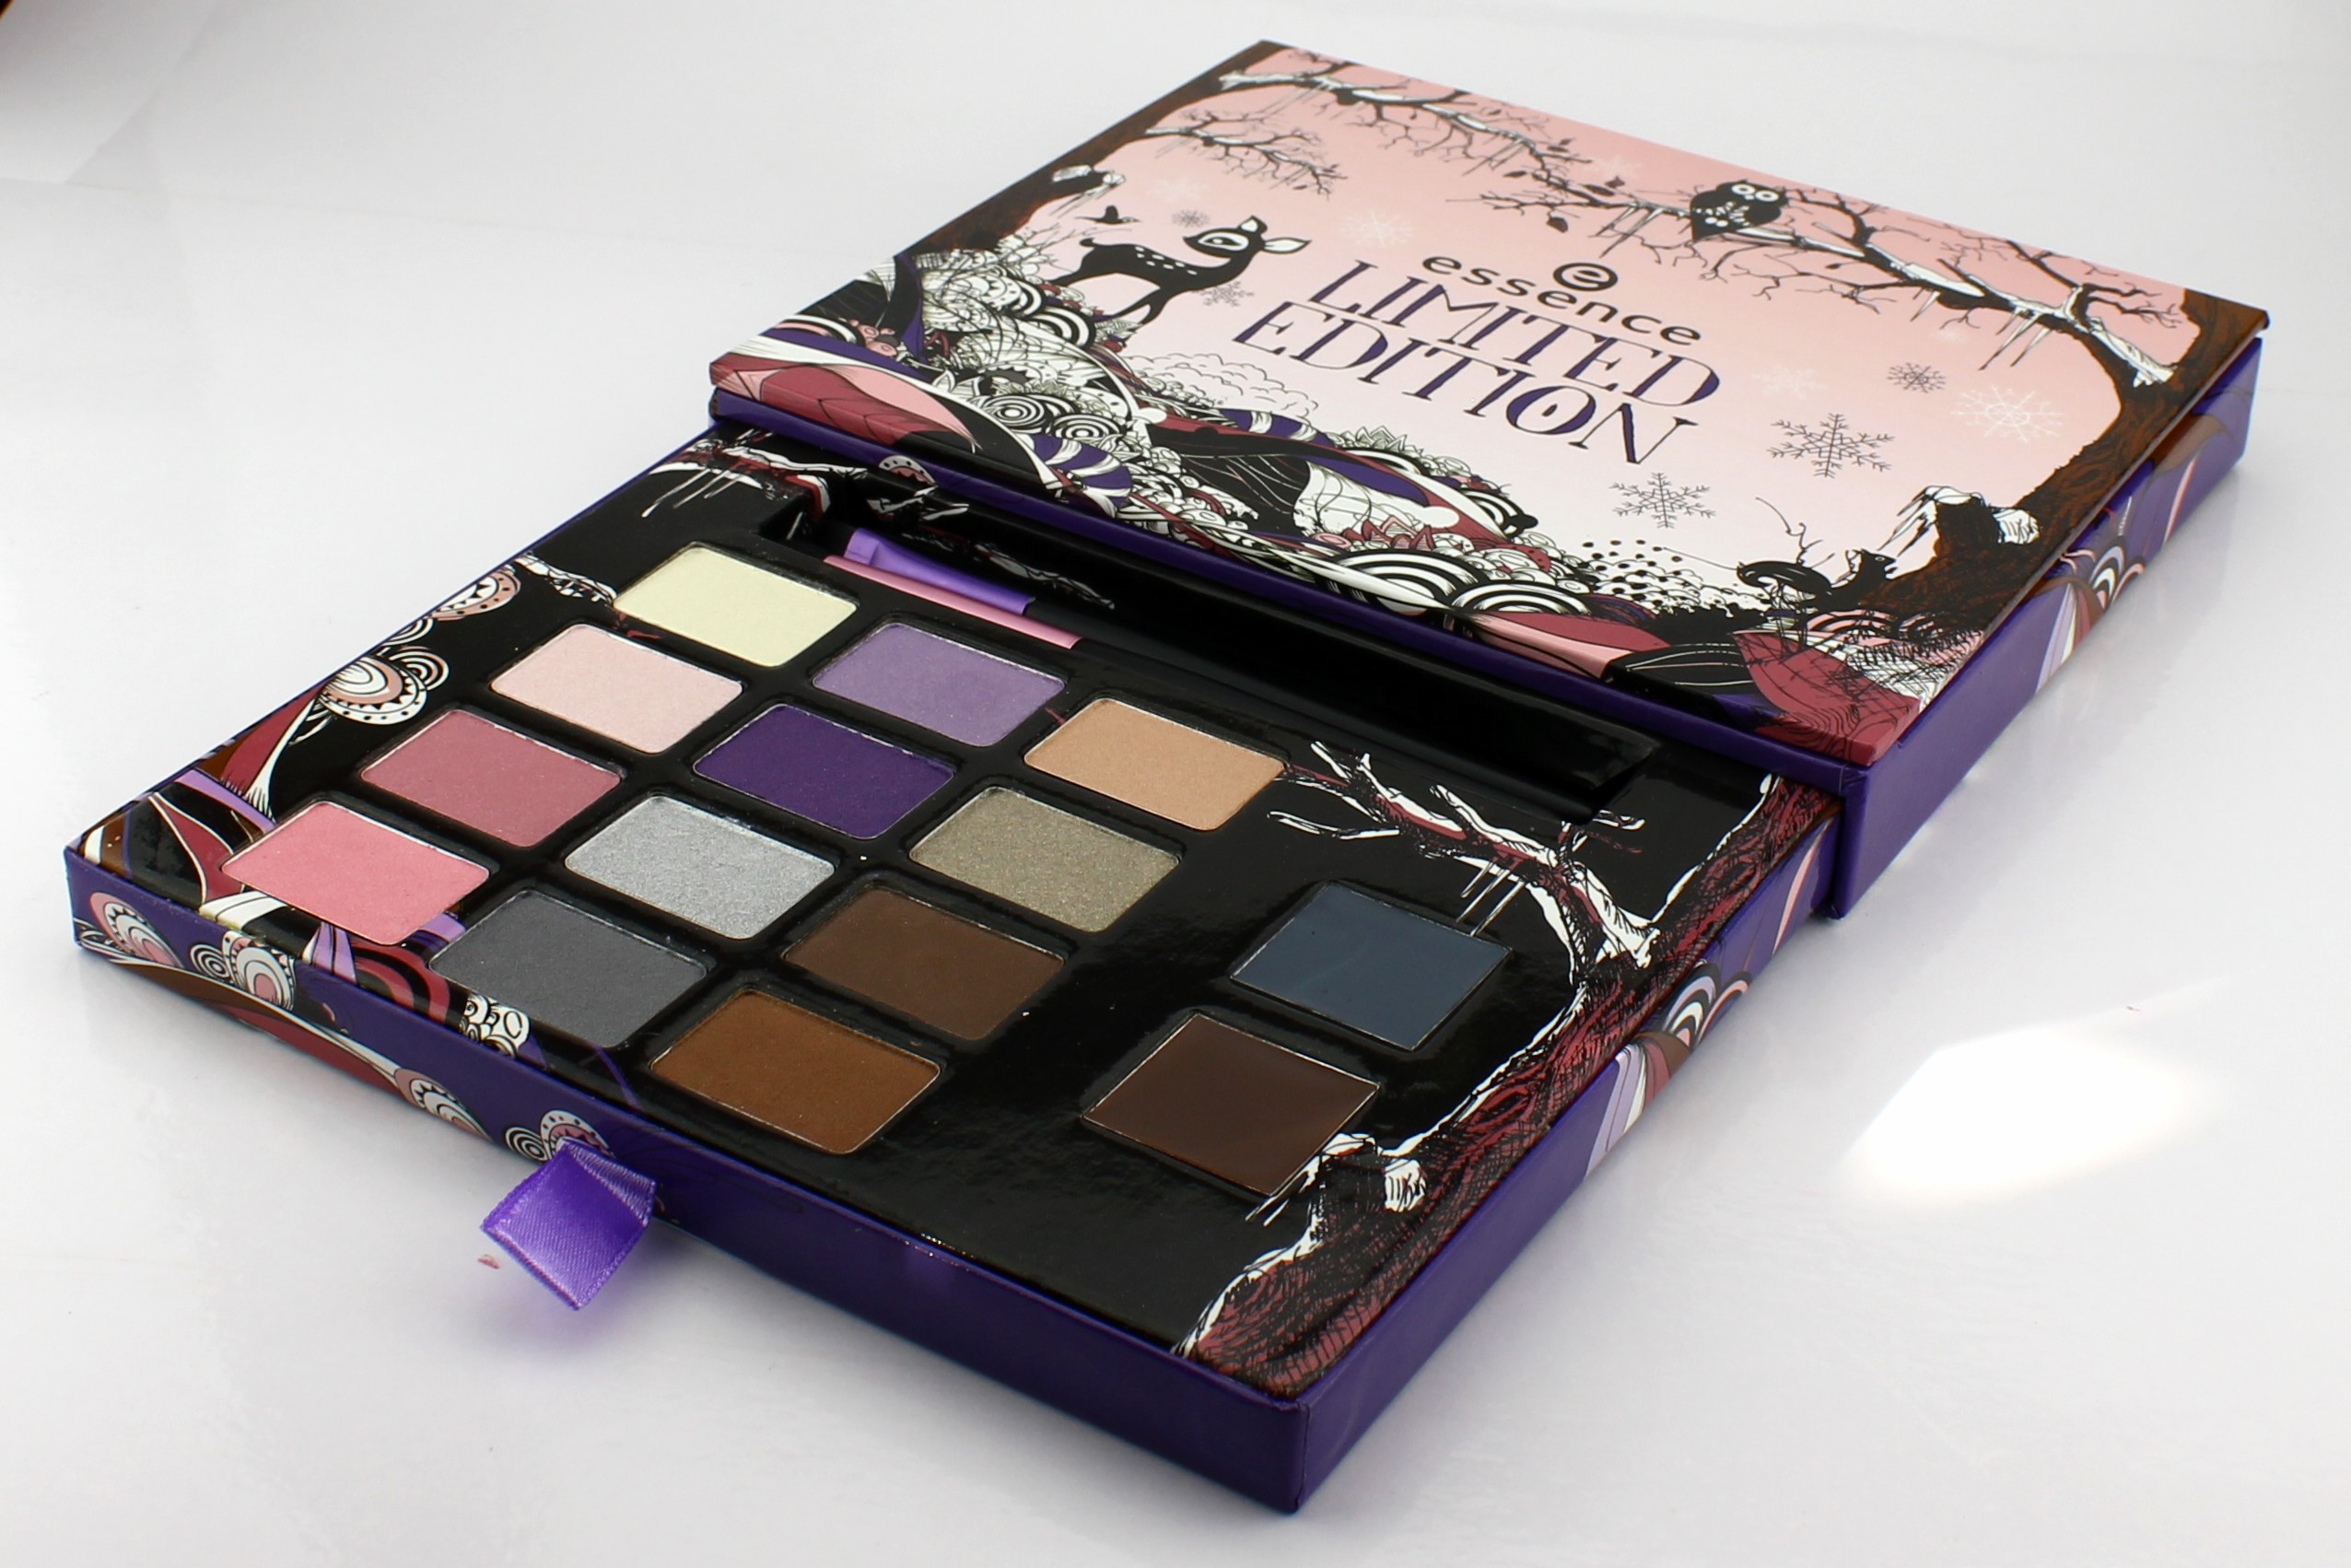 ESSENCE-Eyeshadow-Palette-Limited-Edition-Christmas-2011-Reh-Bambi-3